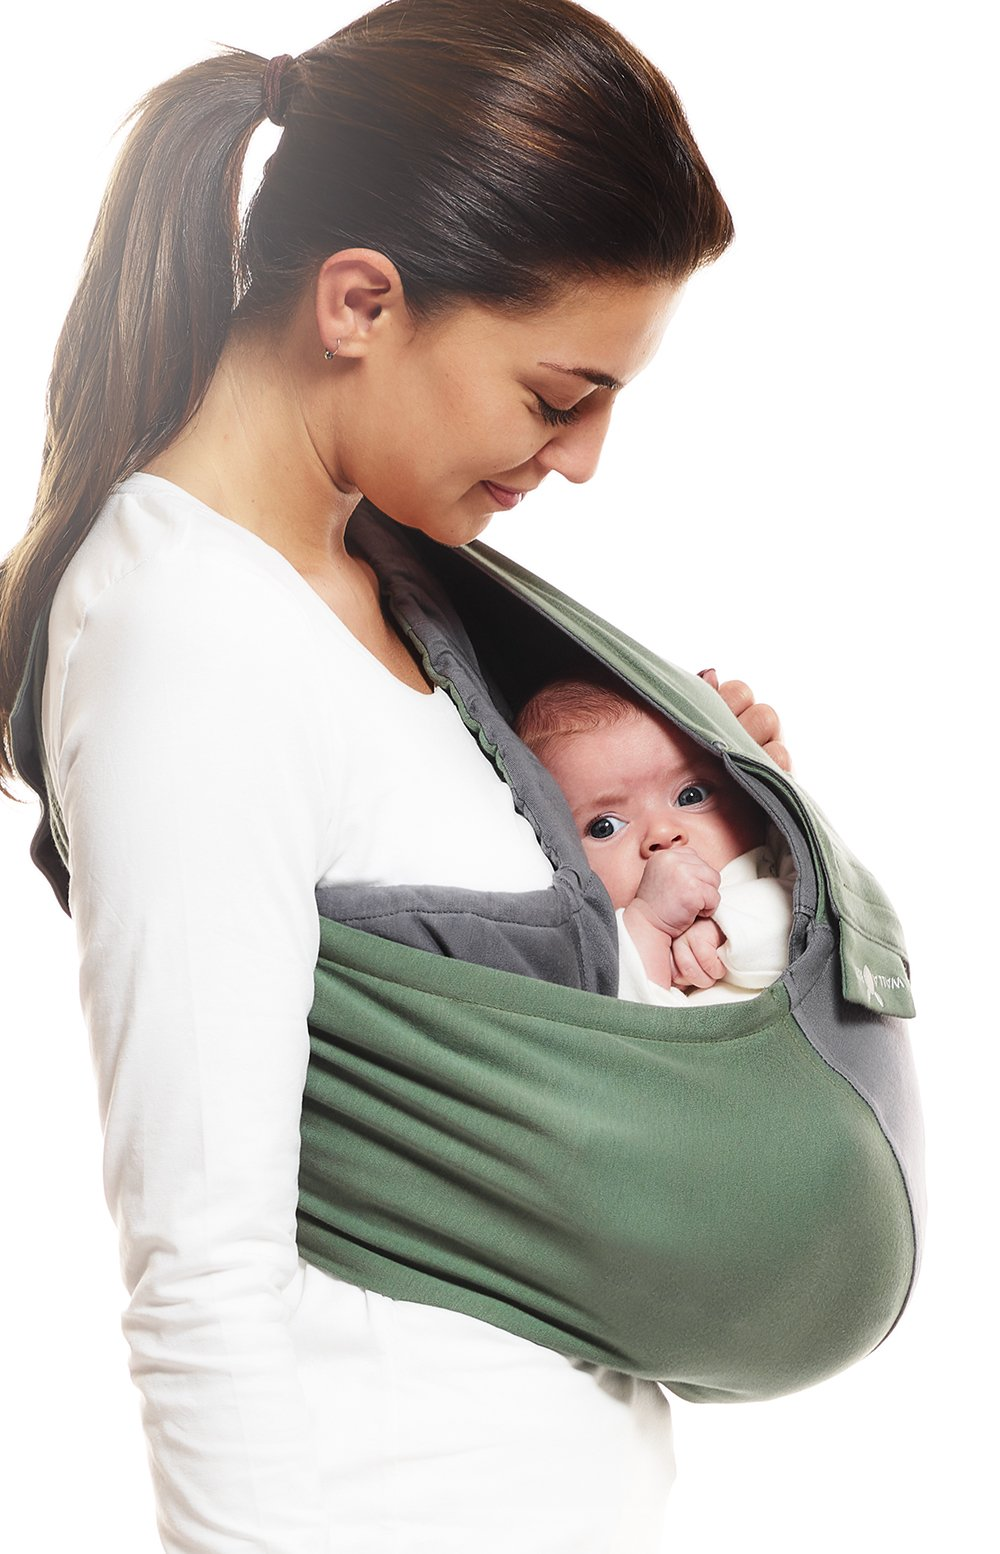 Wallaboo Wrap Sling Carrier Connection, Easy Adjustable, Ergonomic, 3 Carrying Positions, Newborn 8lbs to 33 lbs, Soft Breathable Cotton, 3 Sitting Positions, EU Safety Tested, Color: Green / Grey Wallaboo One size fits all, adjustable in size to fit every mum and dad Can be used for a preemie up to 33 pound child Keeps baby warm in 3 different positions: sleep, sit and active 2